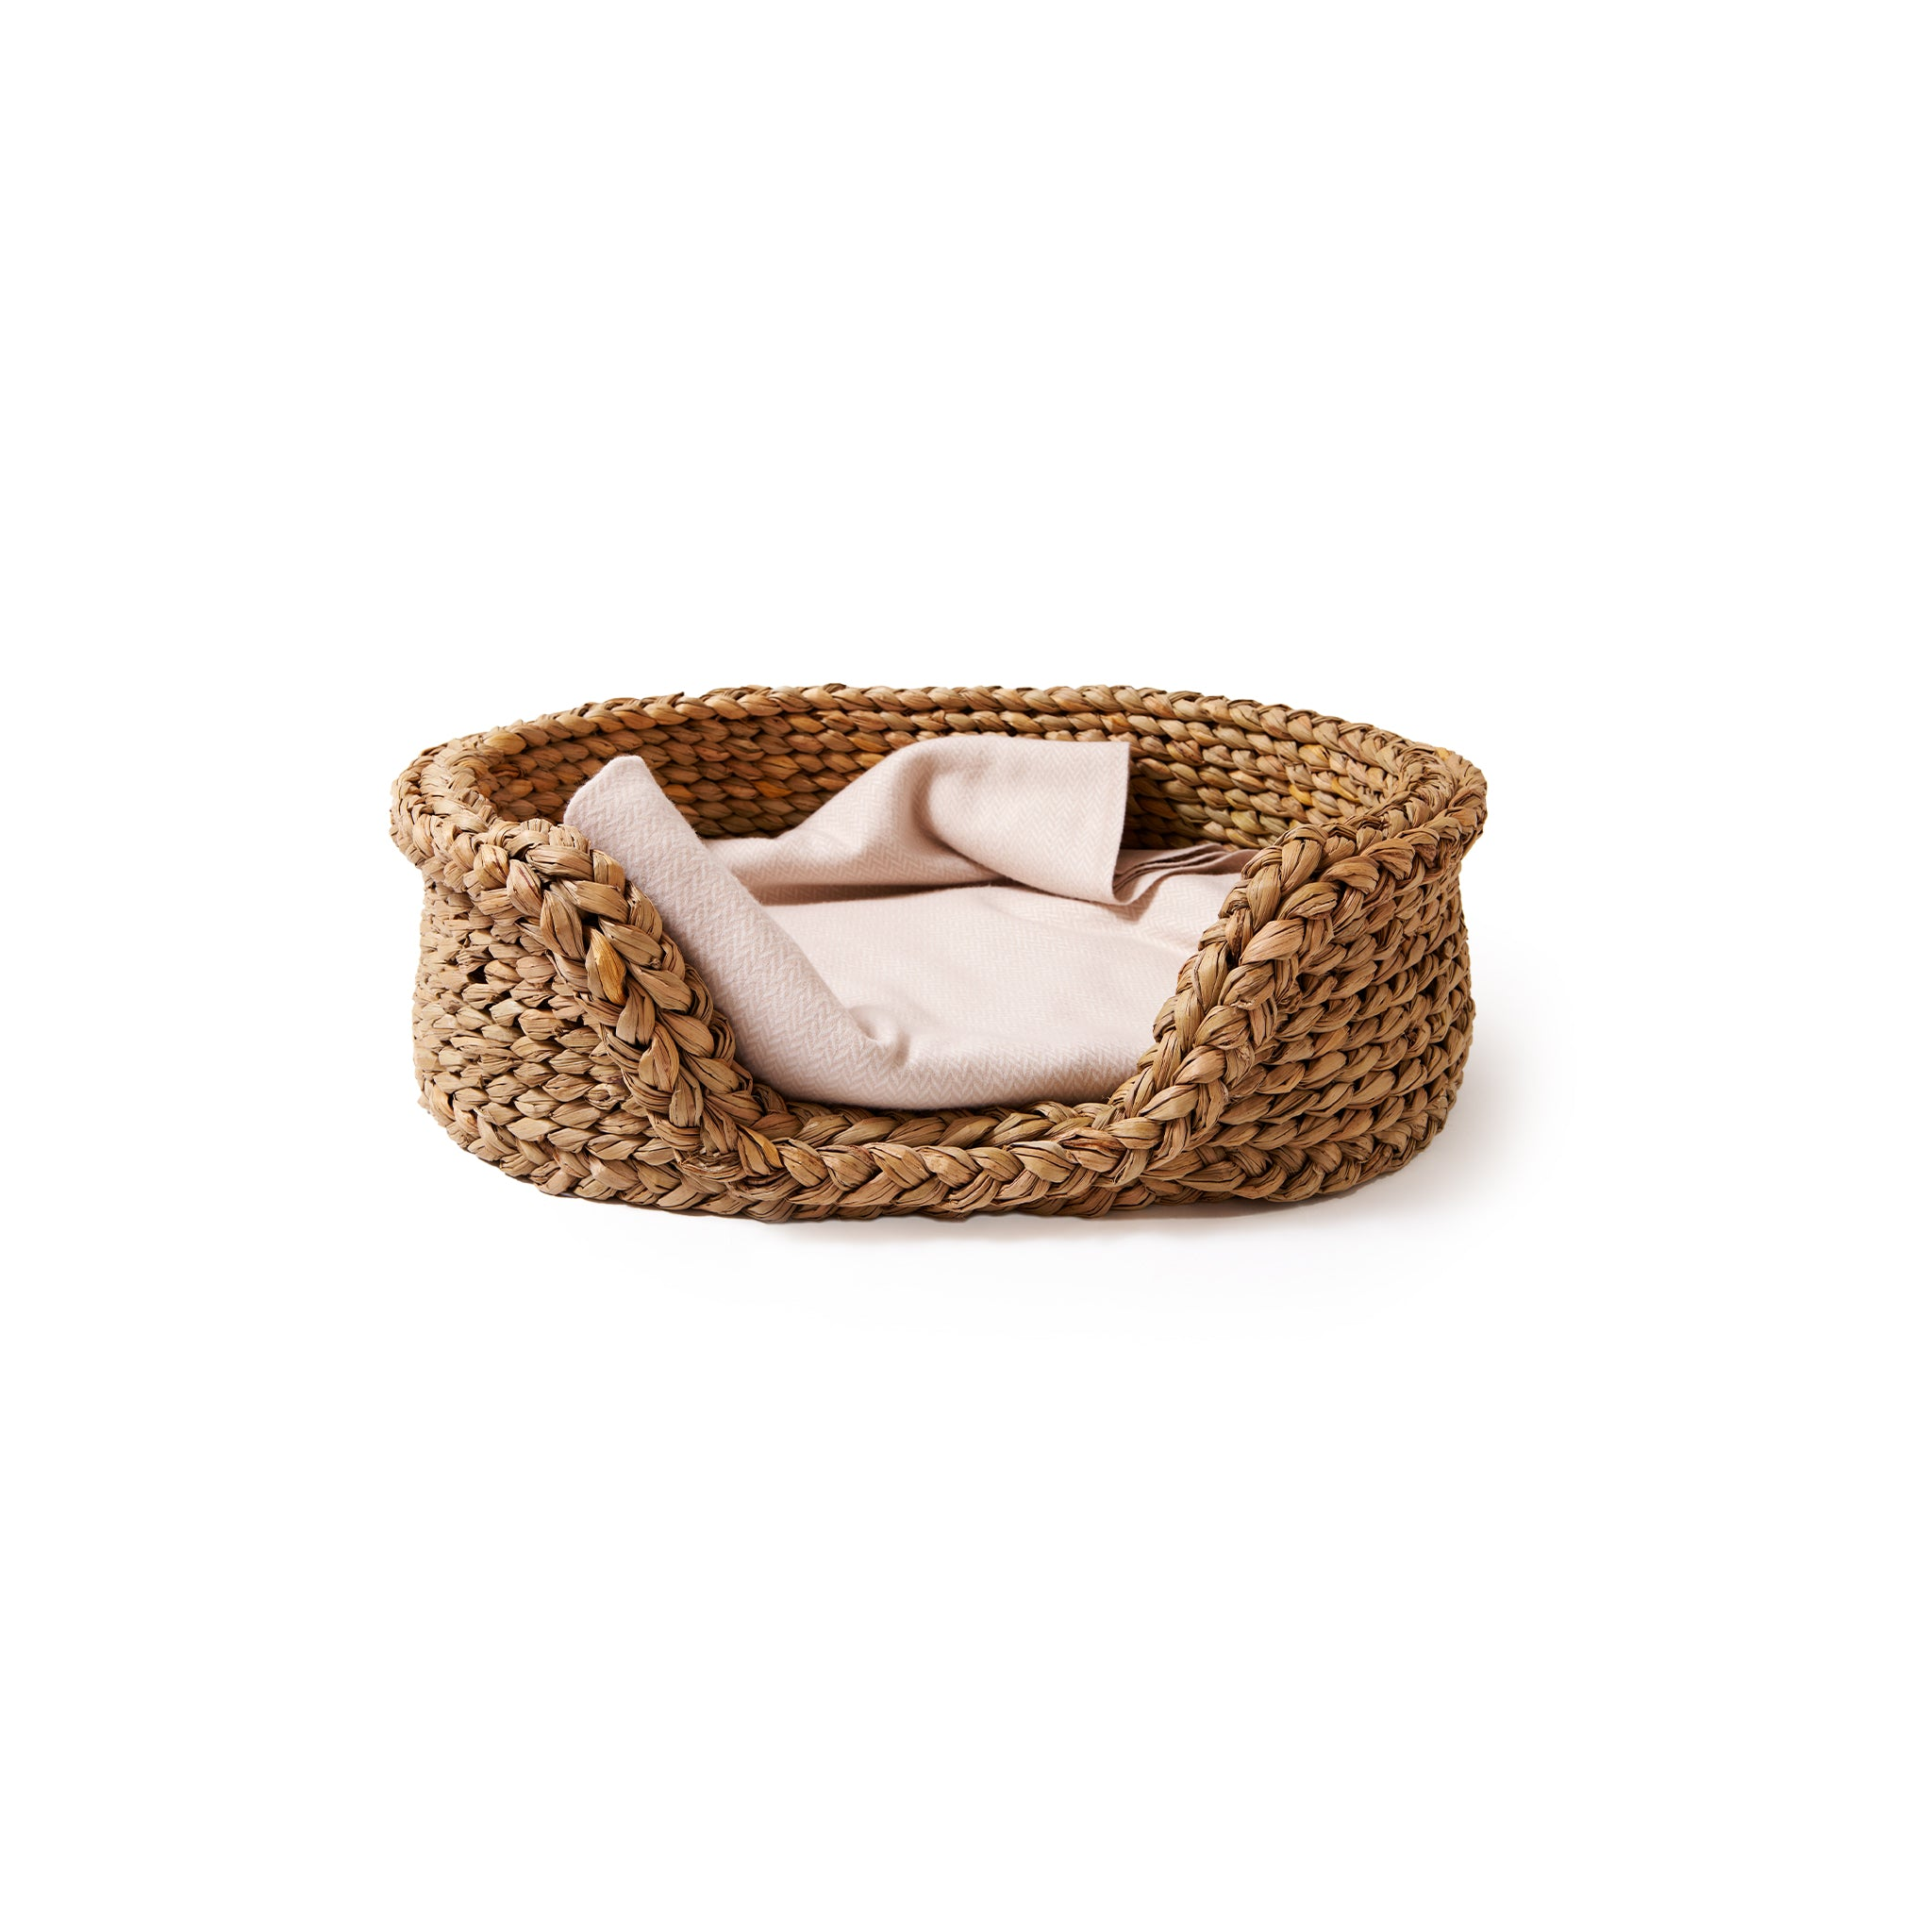 Oval Rush Dog Basket-Small | Nicholas Engert Interiors